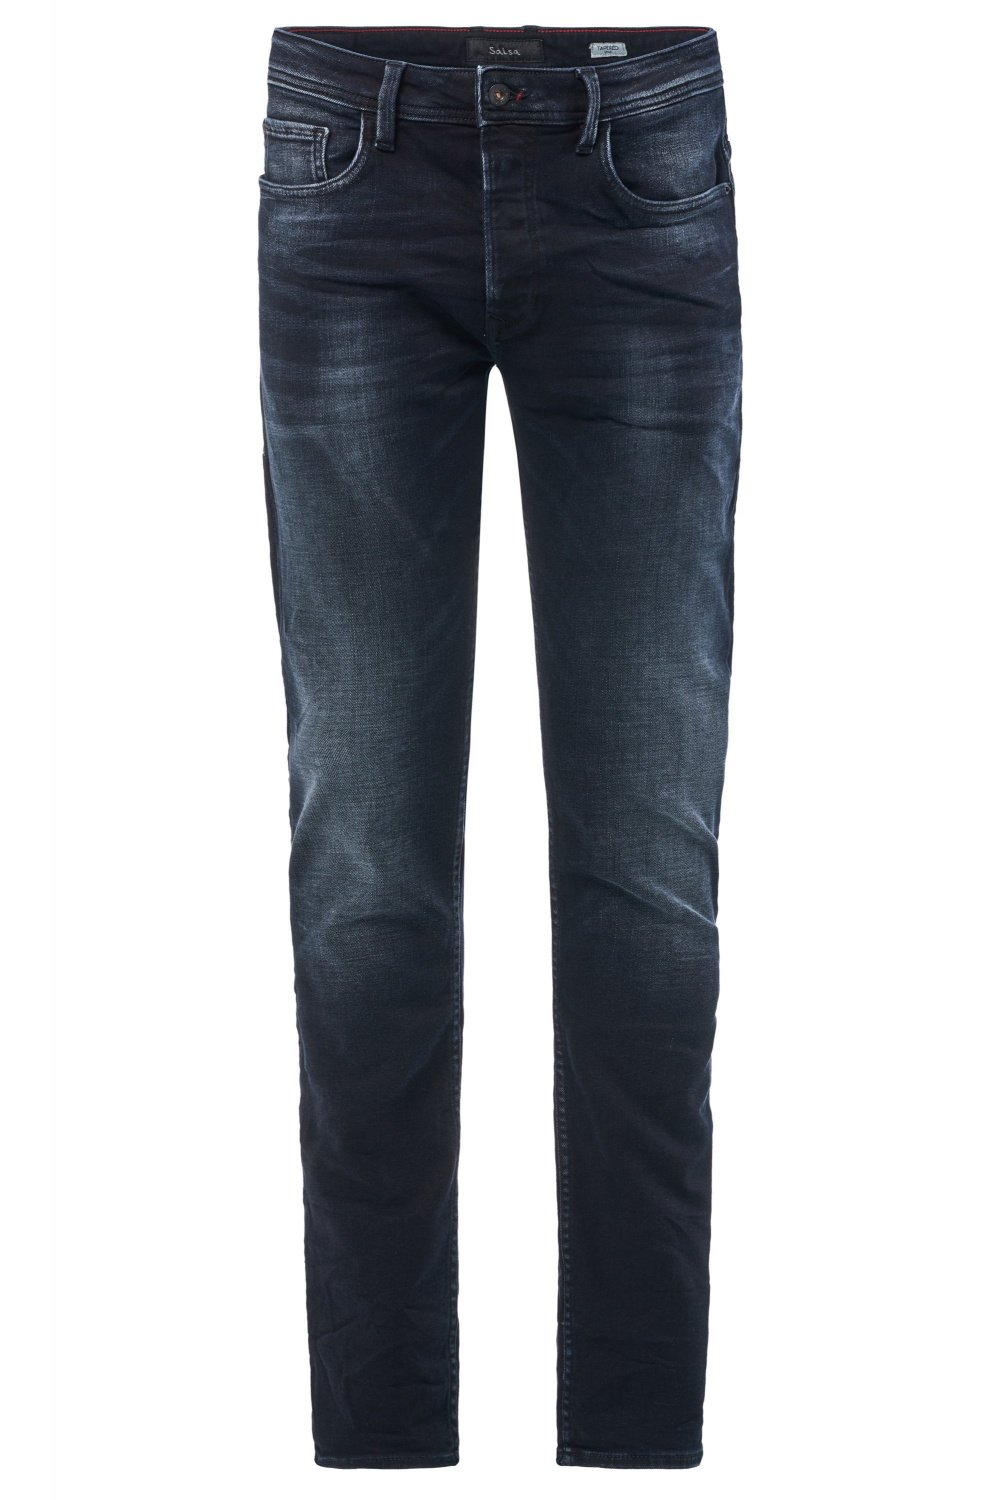 Lima tapered premium wash jeans with wear - Salsa